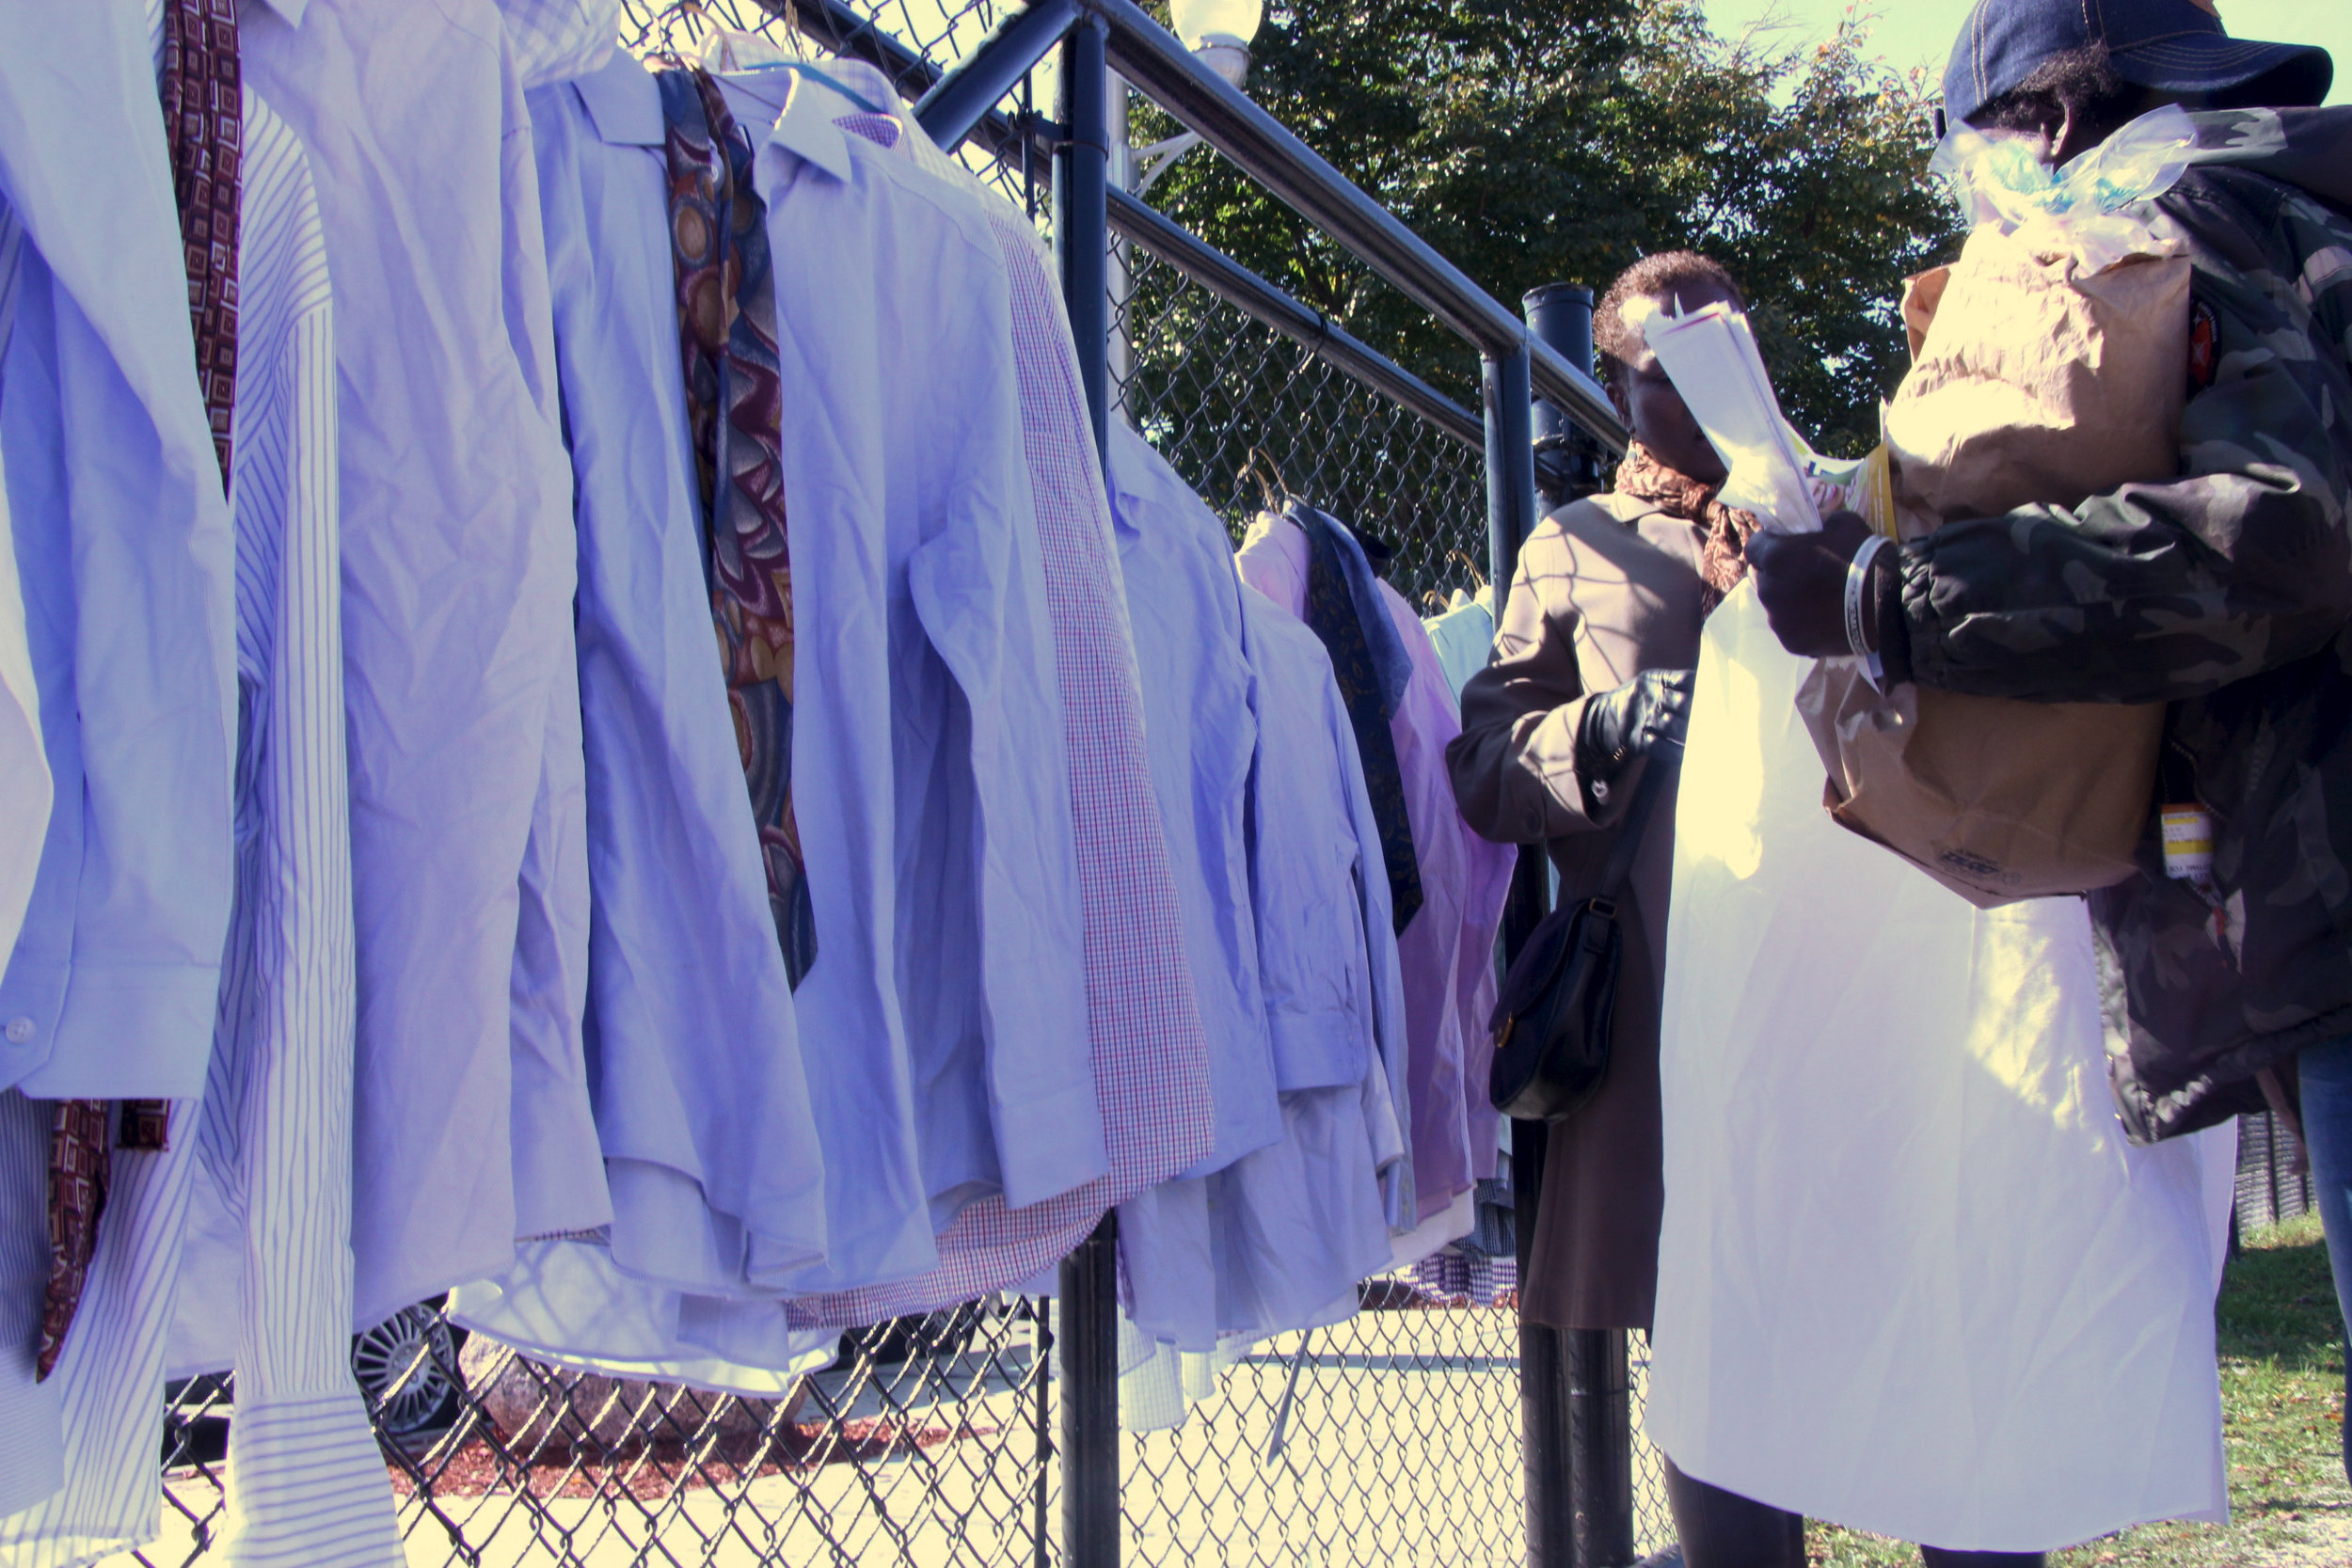 A volunteer from the Living Word Christian Center Prison Ministry helped community members in picking out shirts.